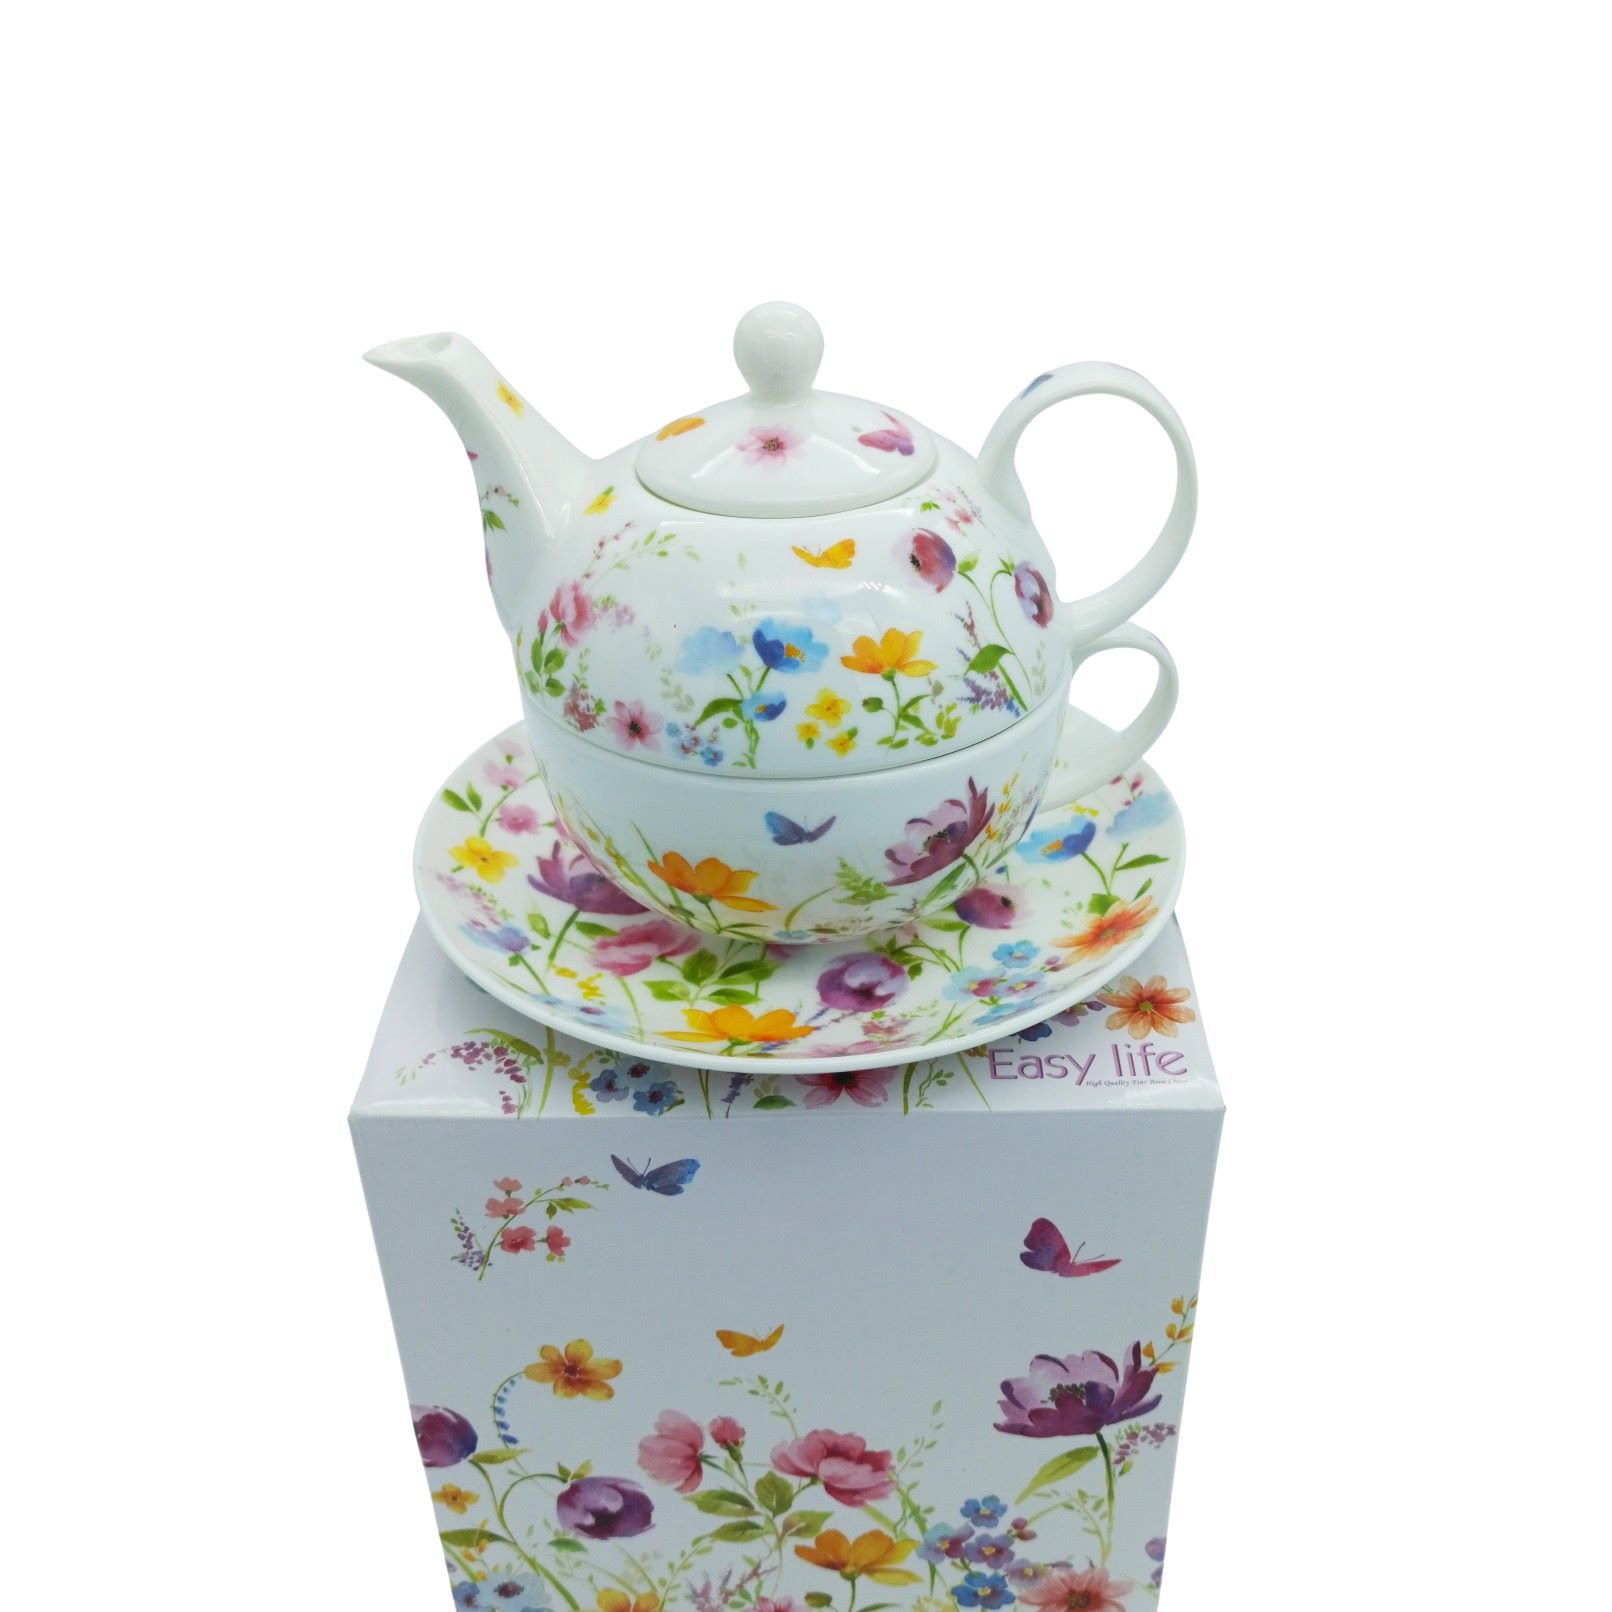 Tea For One In Porcellana Bone China In Scatola Regalo Easy Life